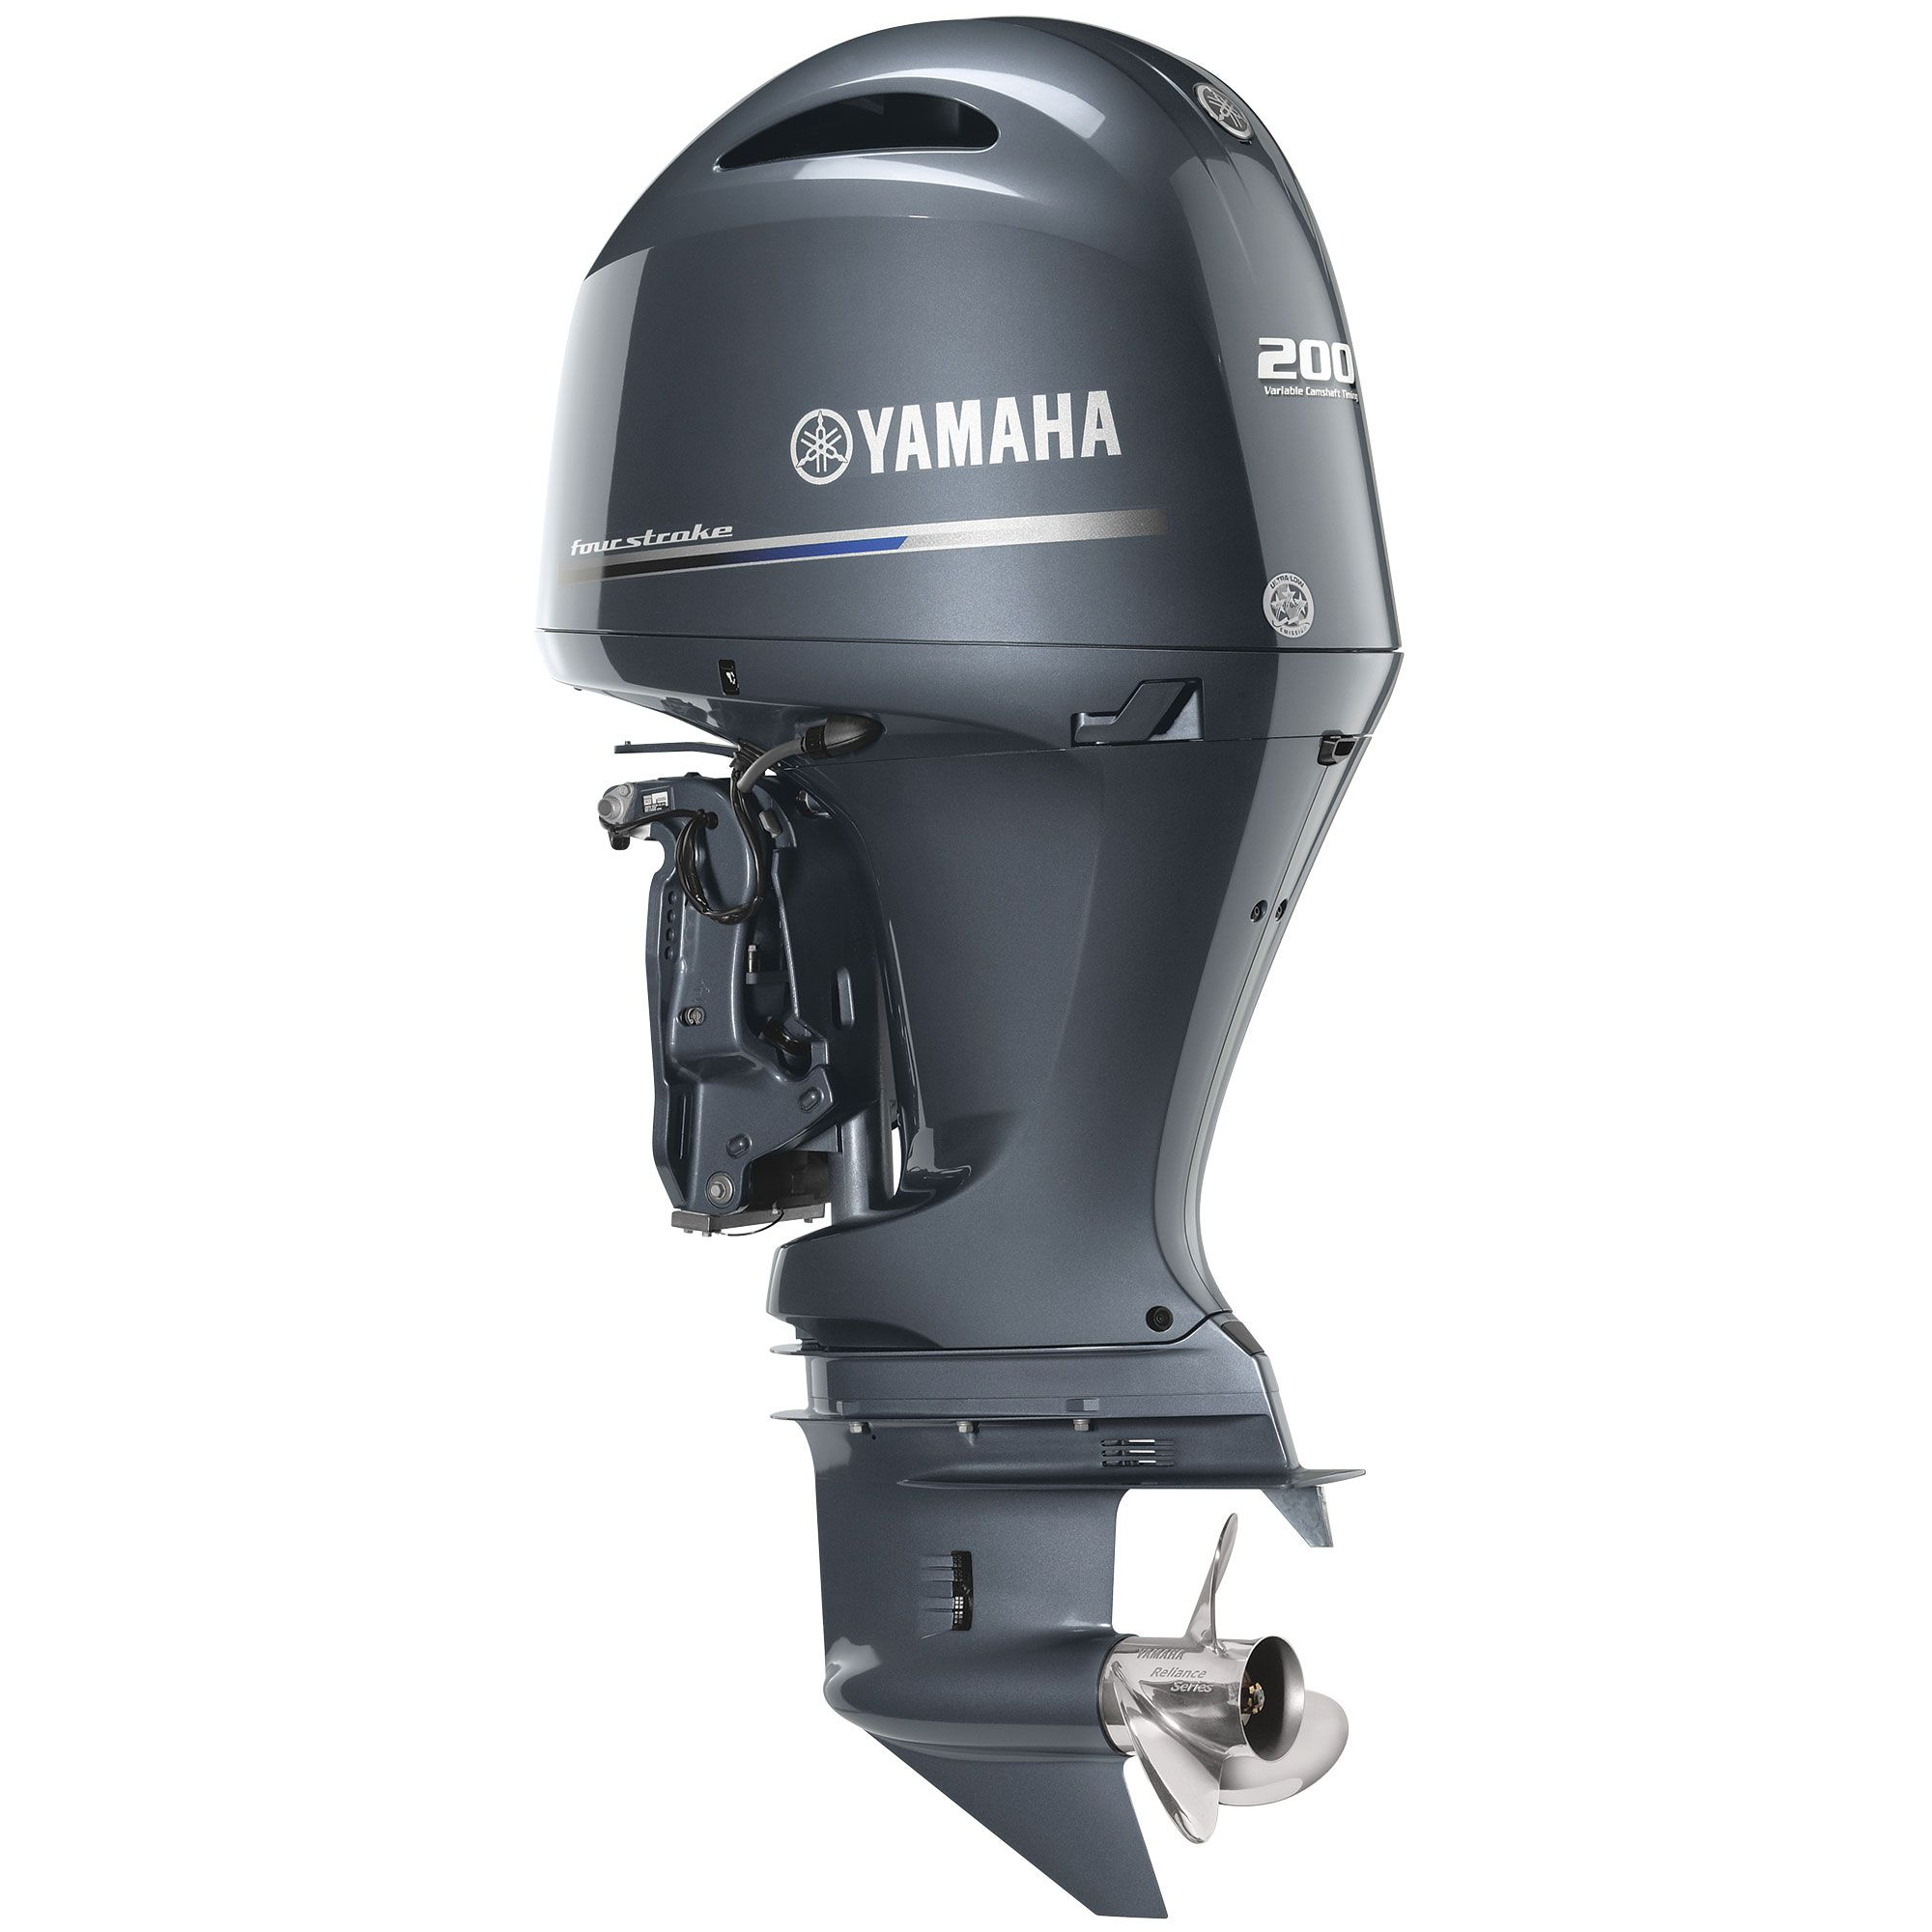 With twin Yamaha 200s and a full fuel tank, the DC 266 has a range of about 307 miles.